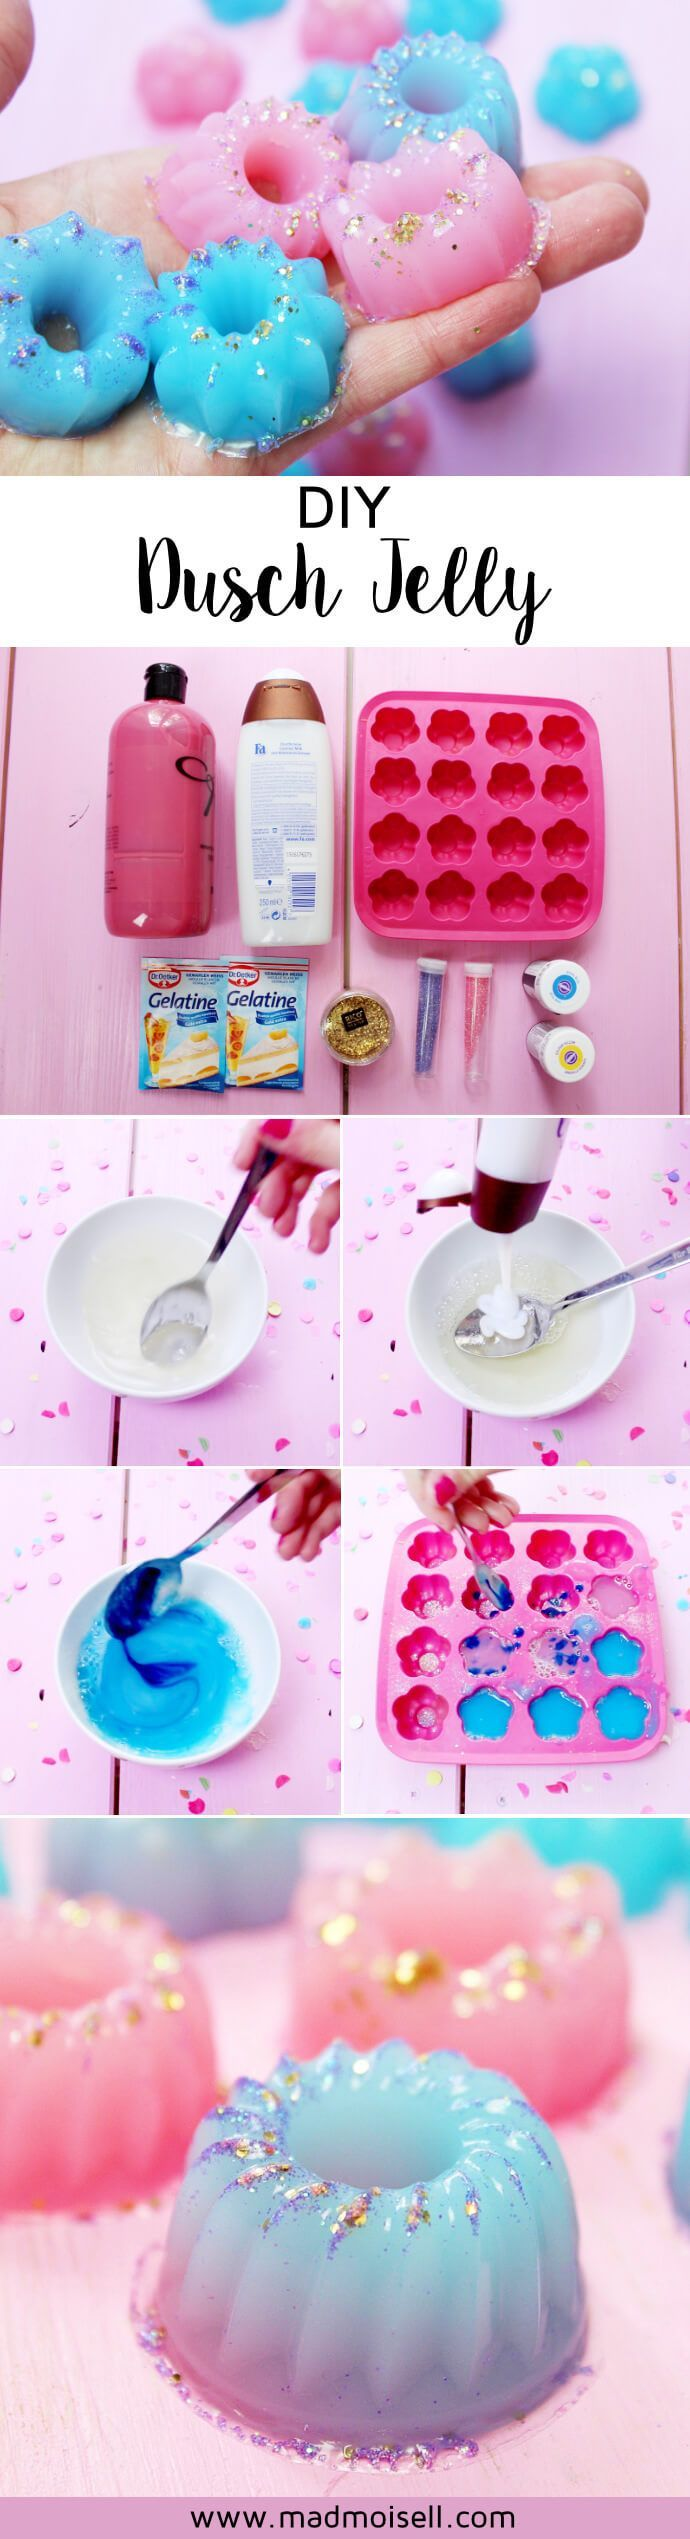 Photo of Make DIY shower jelly in lush style yourself – simple instructions!